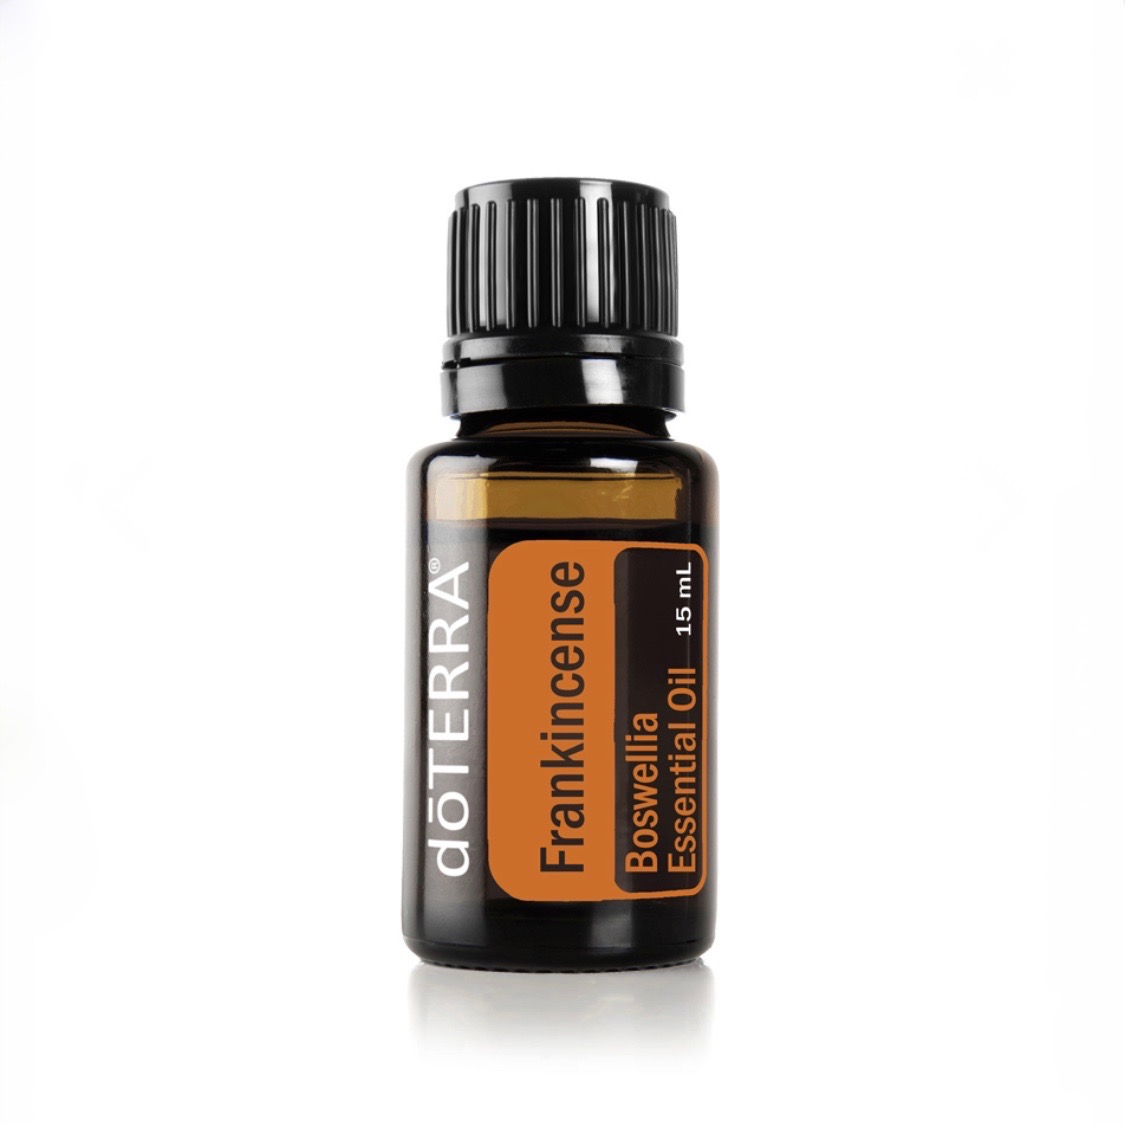 FRANKINCENSE - Renewing, beautifying, rejuvenating, groundingPromotes healthy inflammatory response and promotes cellular health (healthy cell growths) - take one drop under tongue daily.For skin health, add one drop to your facial oil/moistruizer. It rejuvenates the skin and reduces the appearance of fine lines, scars and stretch marks.Inhale straight from the bottle to provide calming emotions.For grounding - apply under feet with coconut oil.Apply on pulse points in meditation.Take internally to support healthy cellular and immun function.